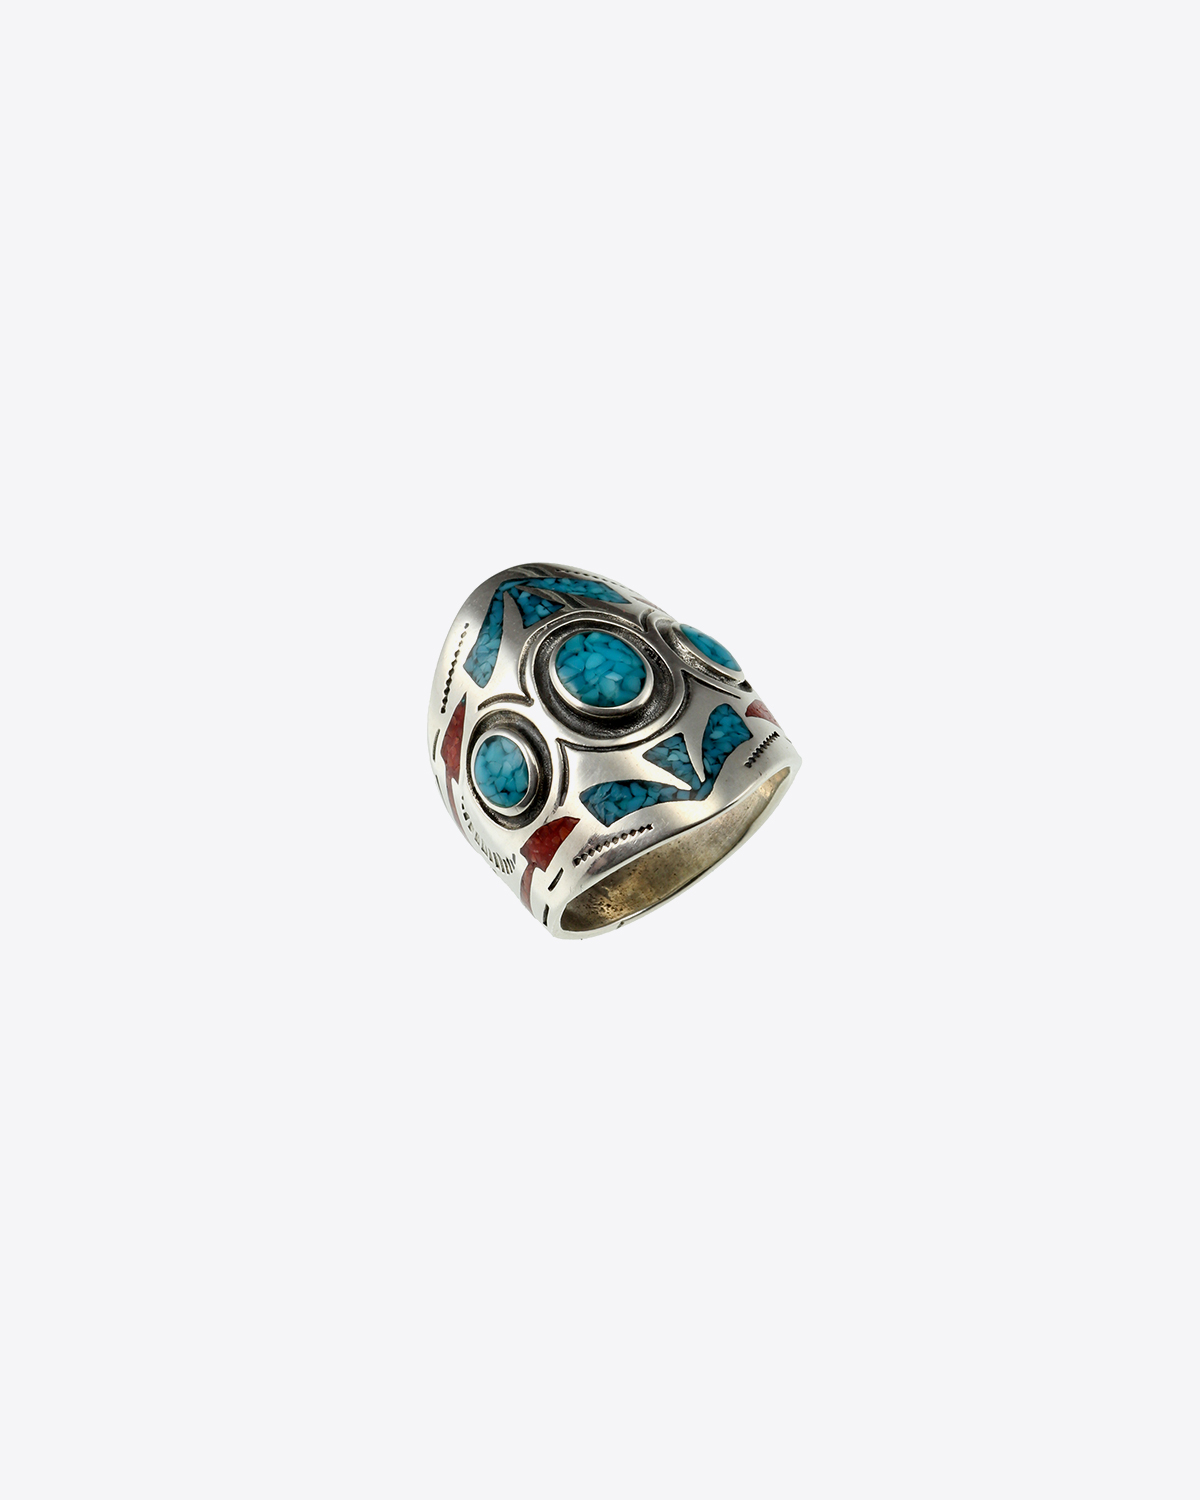 Harpo Bague Navajo Inlay Glève Incrustation Corail & Turquoise R186